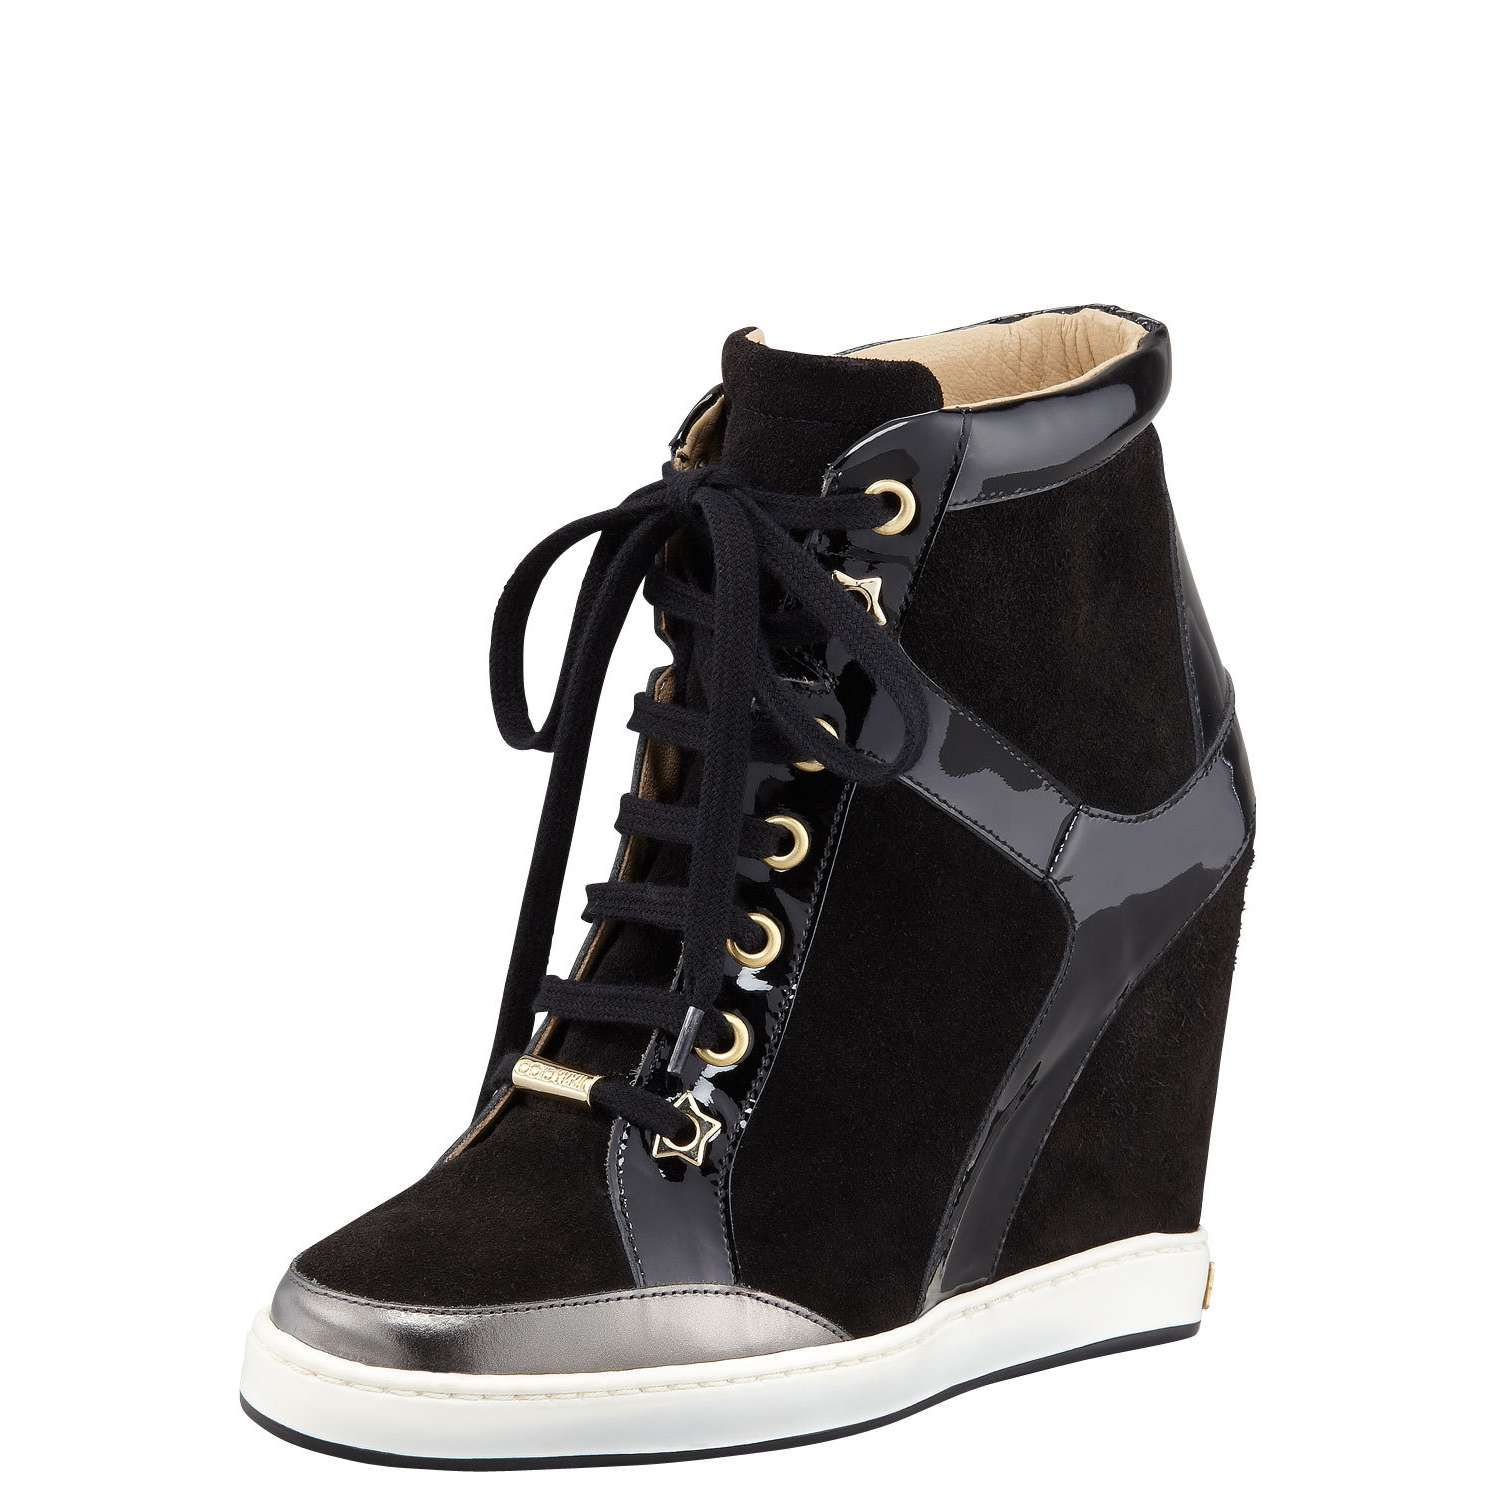 trends for gt wedge heels sneakers shoes shoes shoes